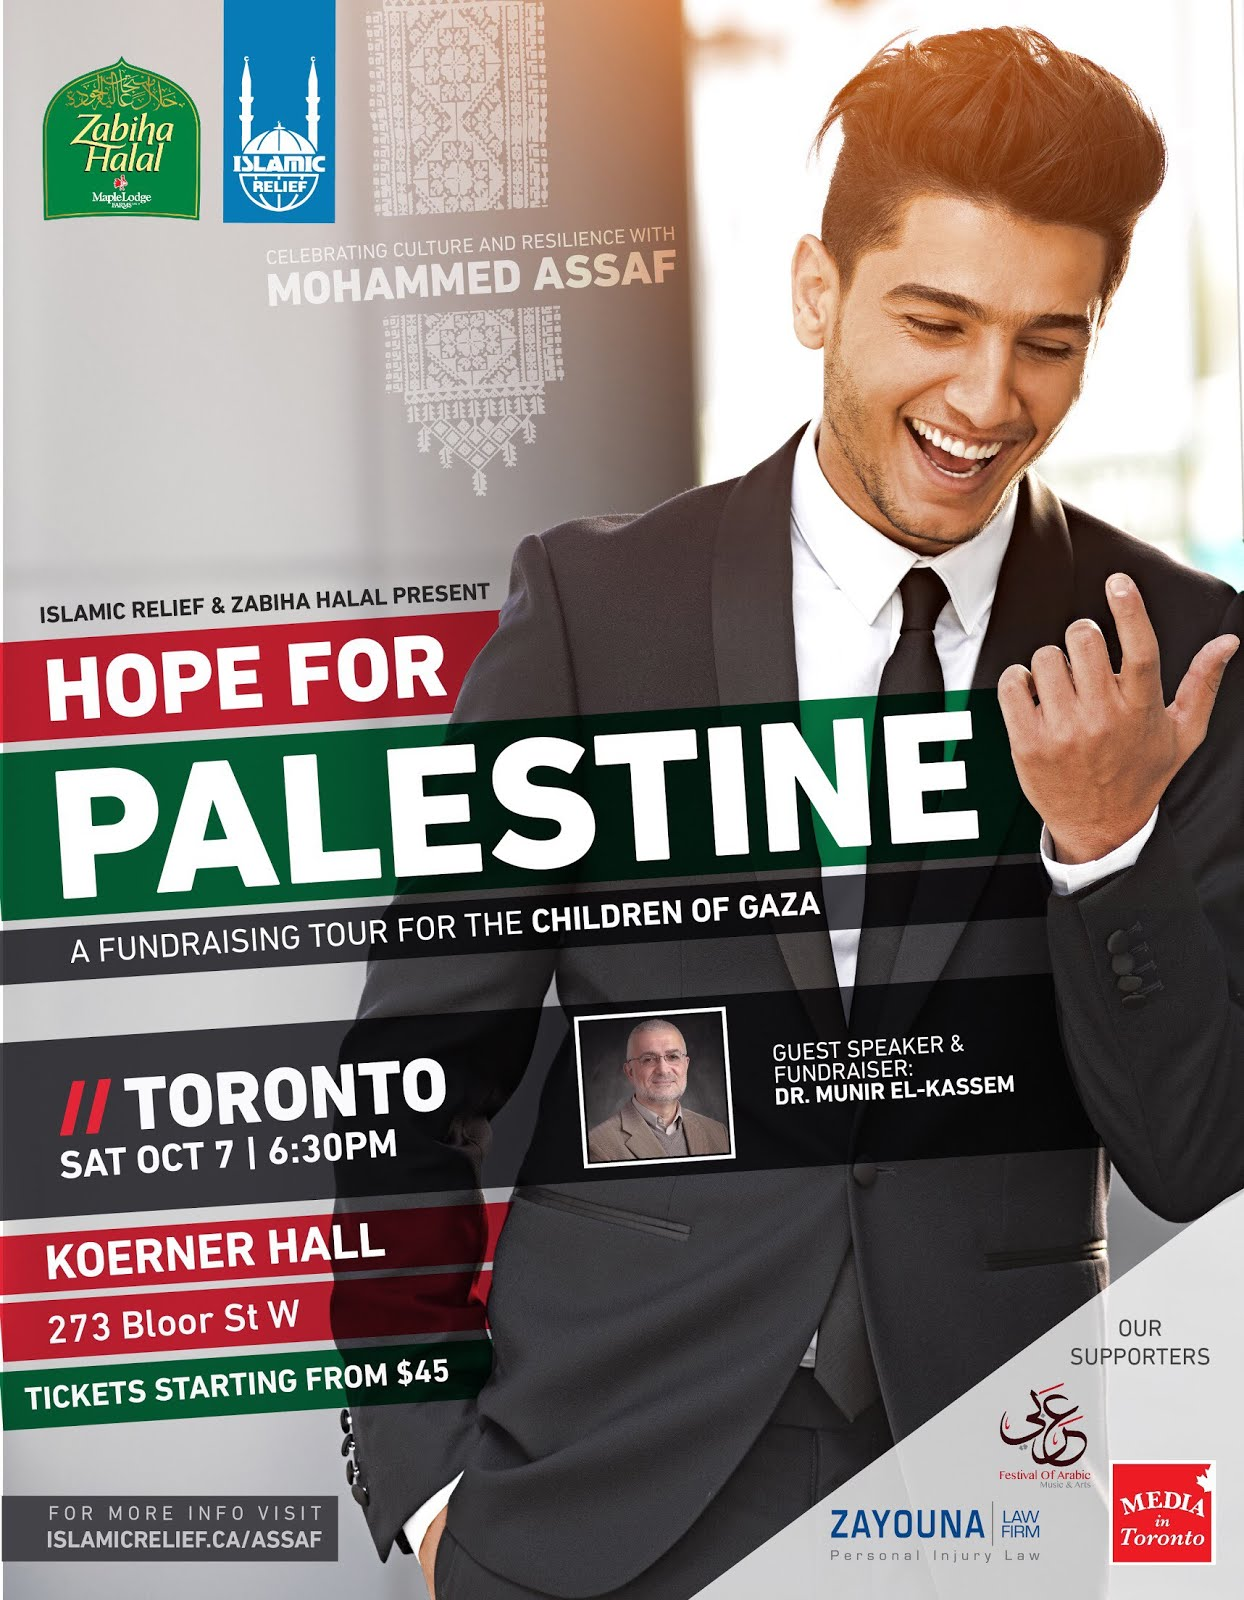 MOHAMMED ASSAF CONCERT - OCT 7